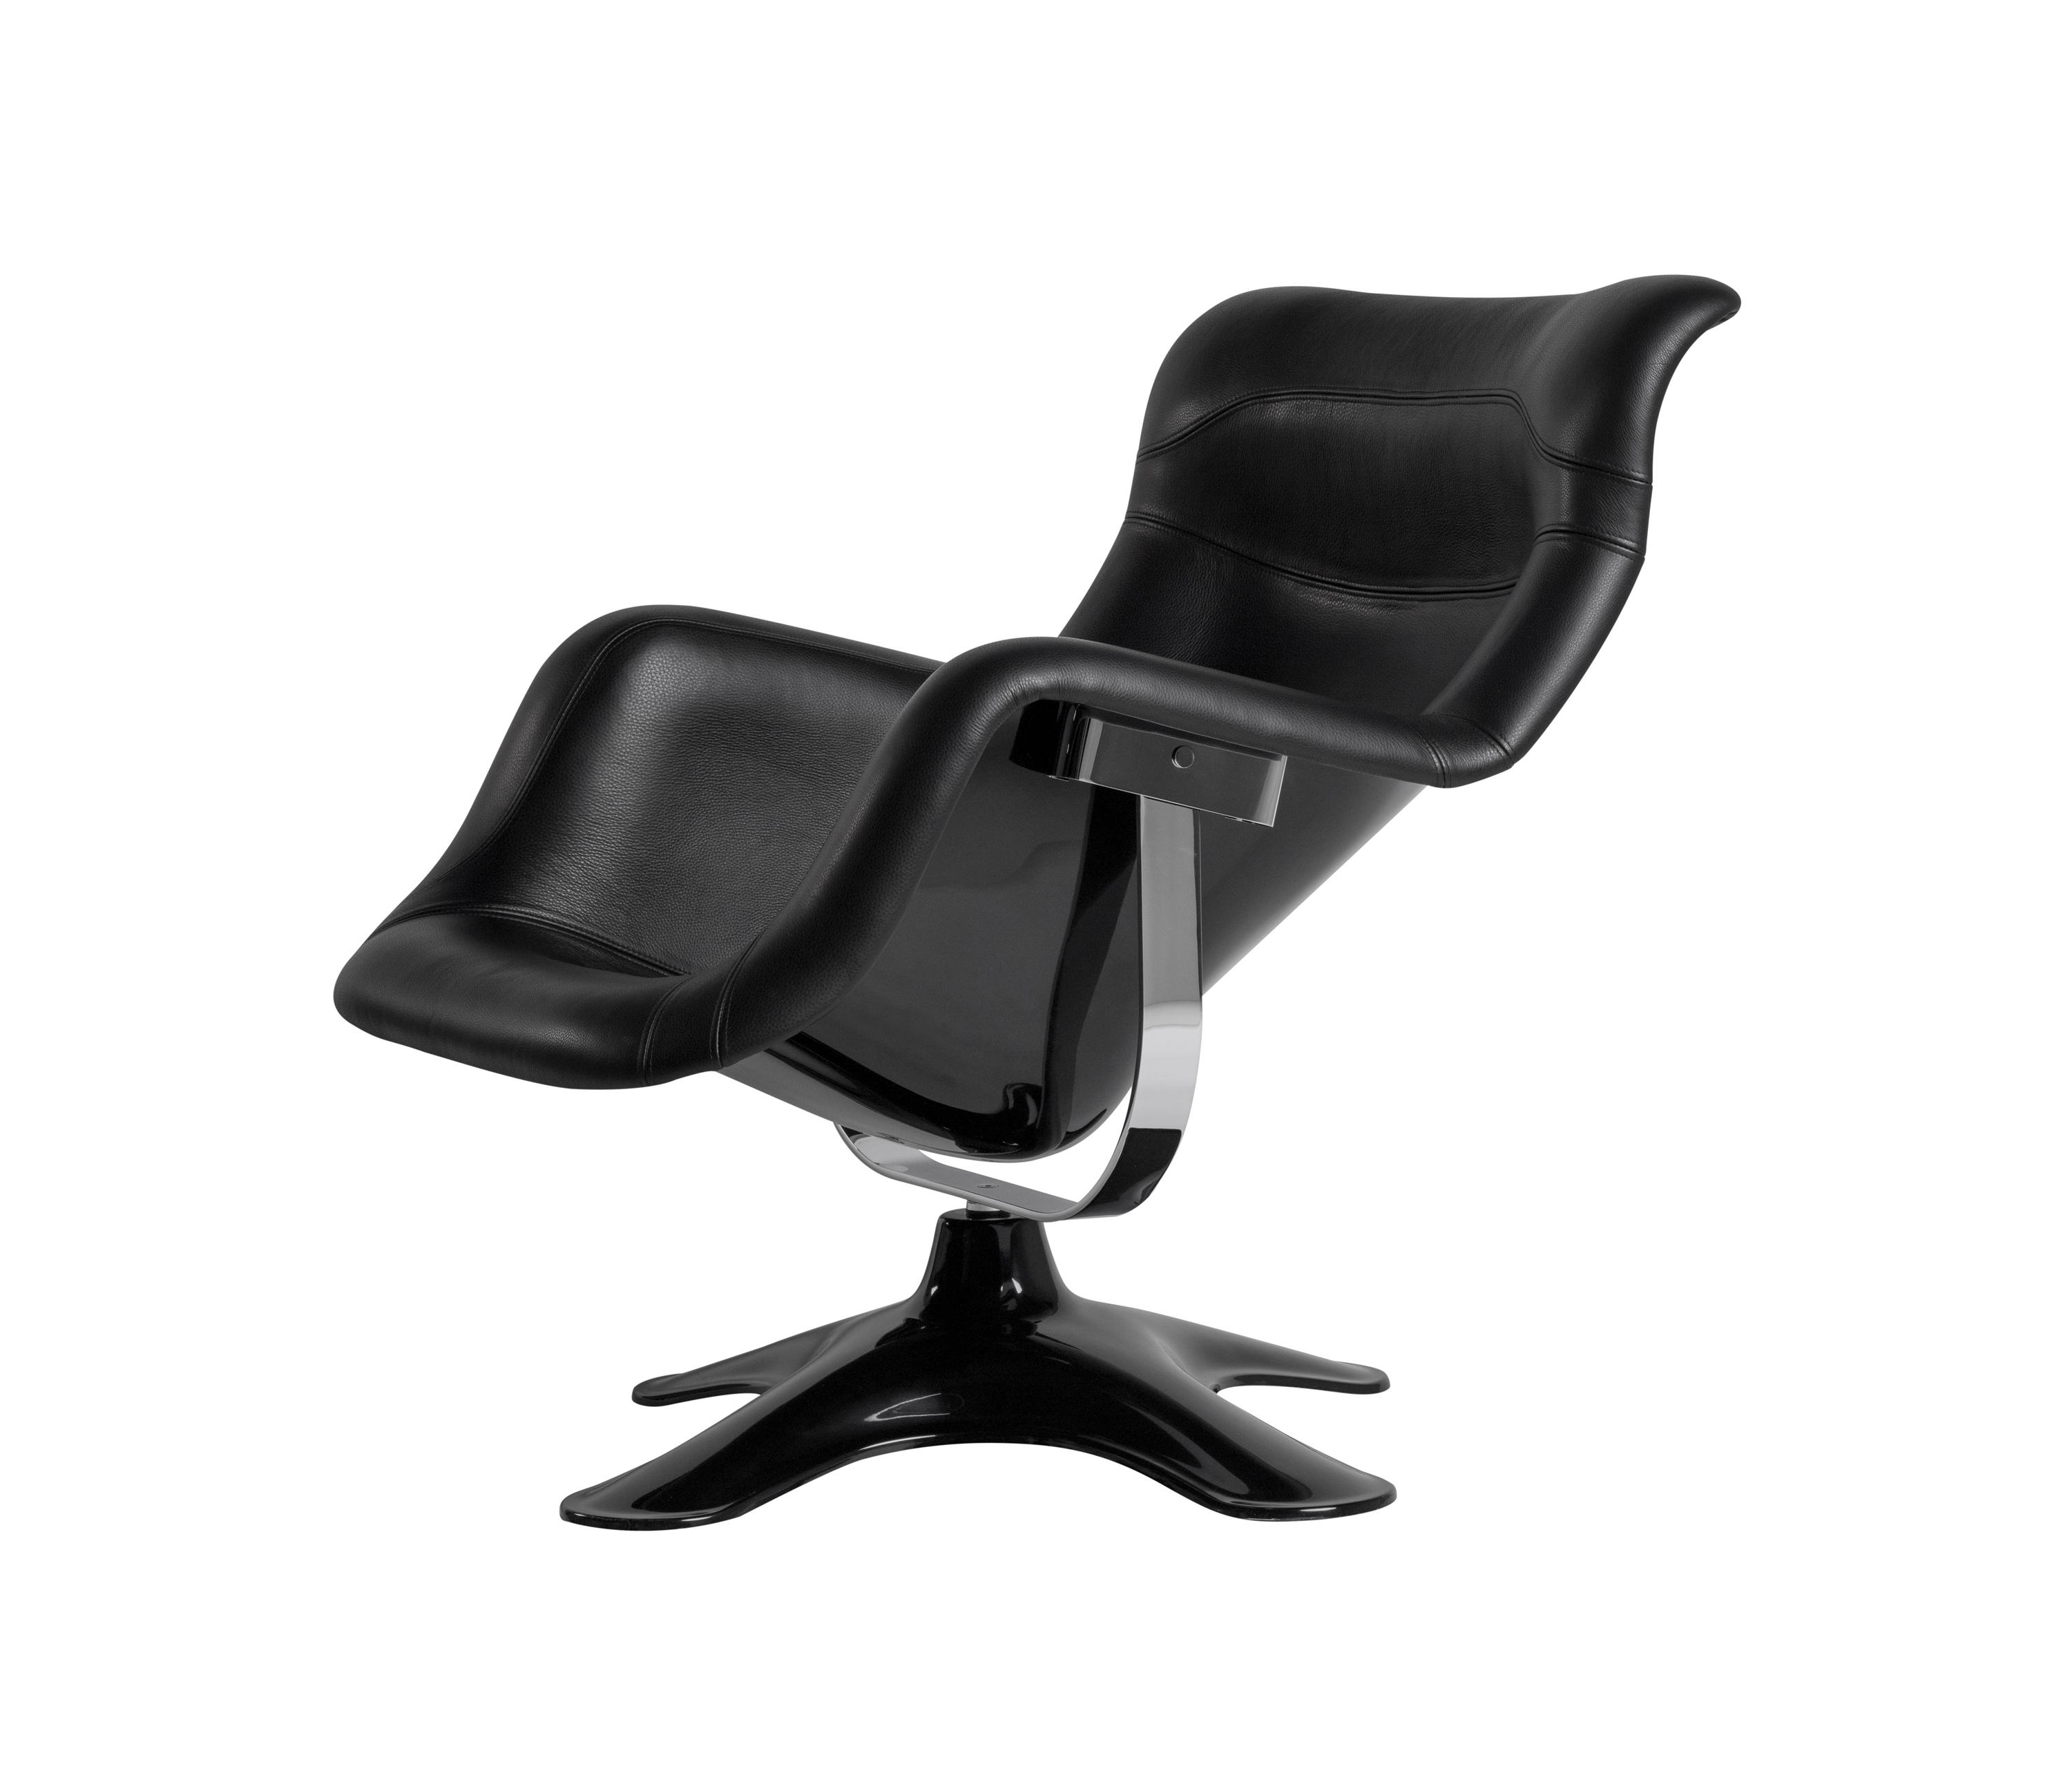 Karuselli Sessel karuselli lounge chair - sessel von artek | architonic